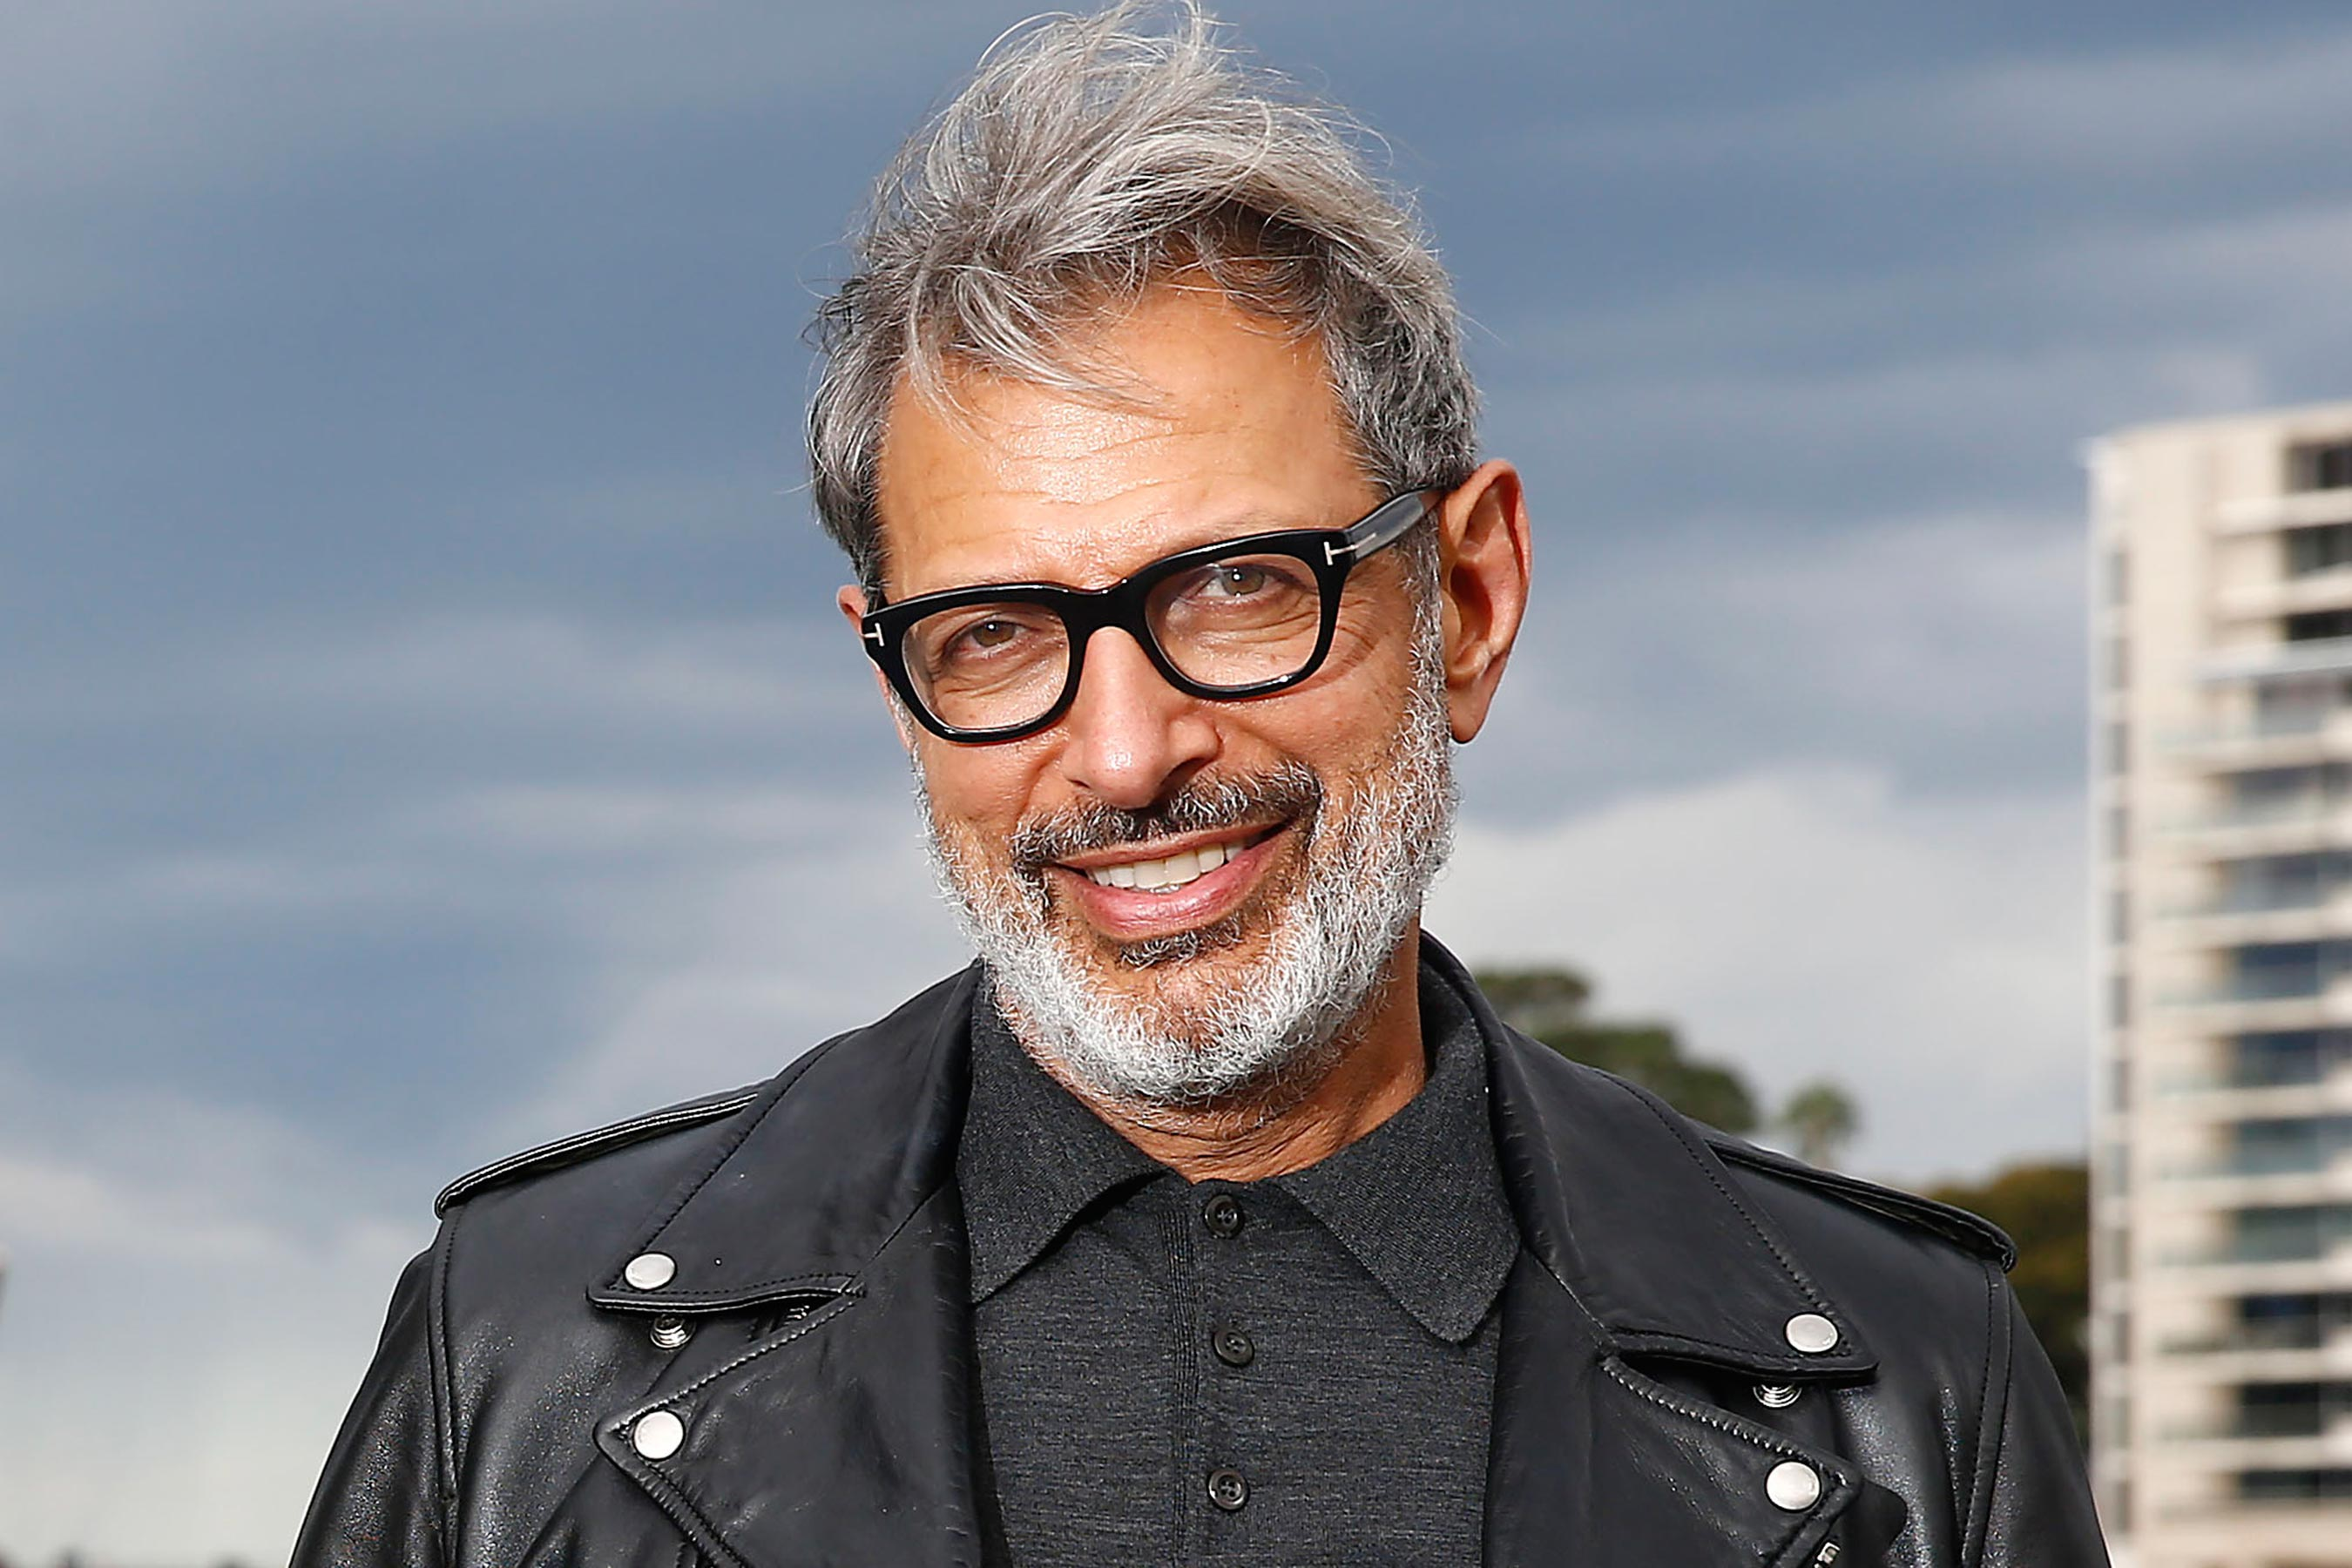 Here's 30 minutes of Jeff Goldblum purring, if you're into that sort of thing